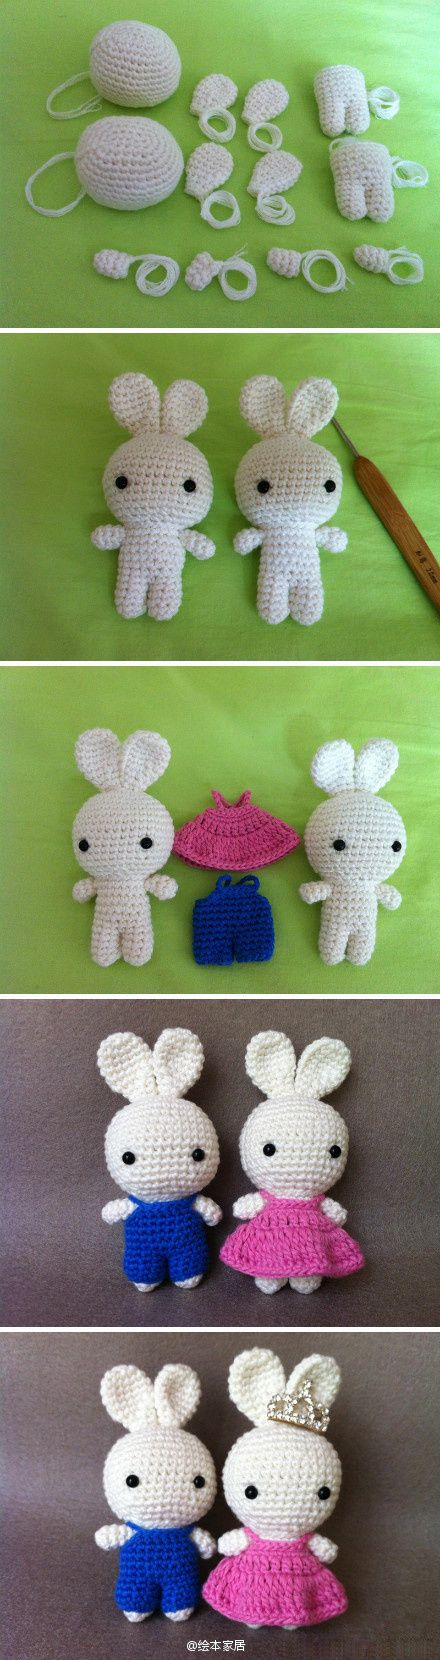 Amigurumi Doll Tutorial For Beginners : 753 best images about Amigurumi Crochet Animals on ...